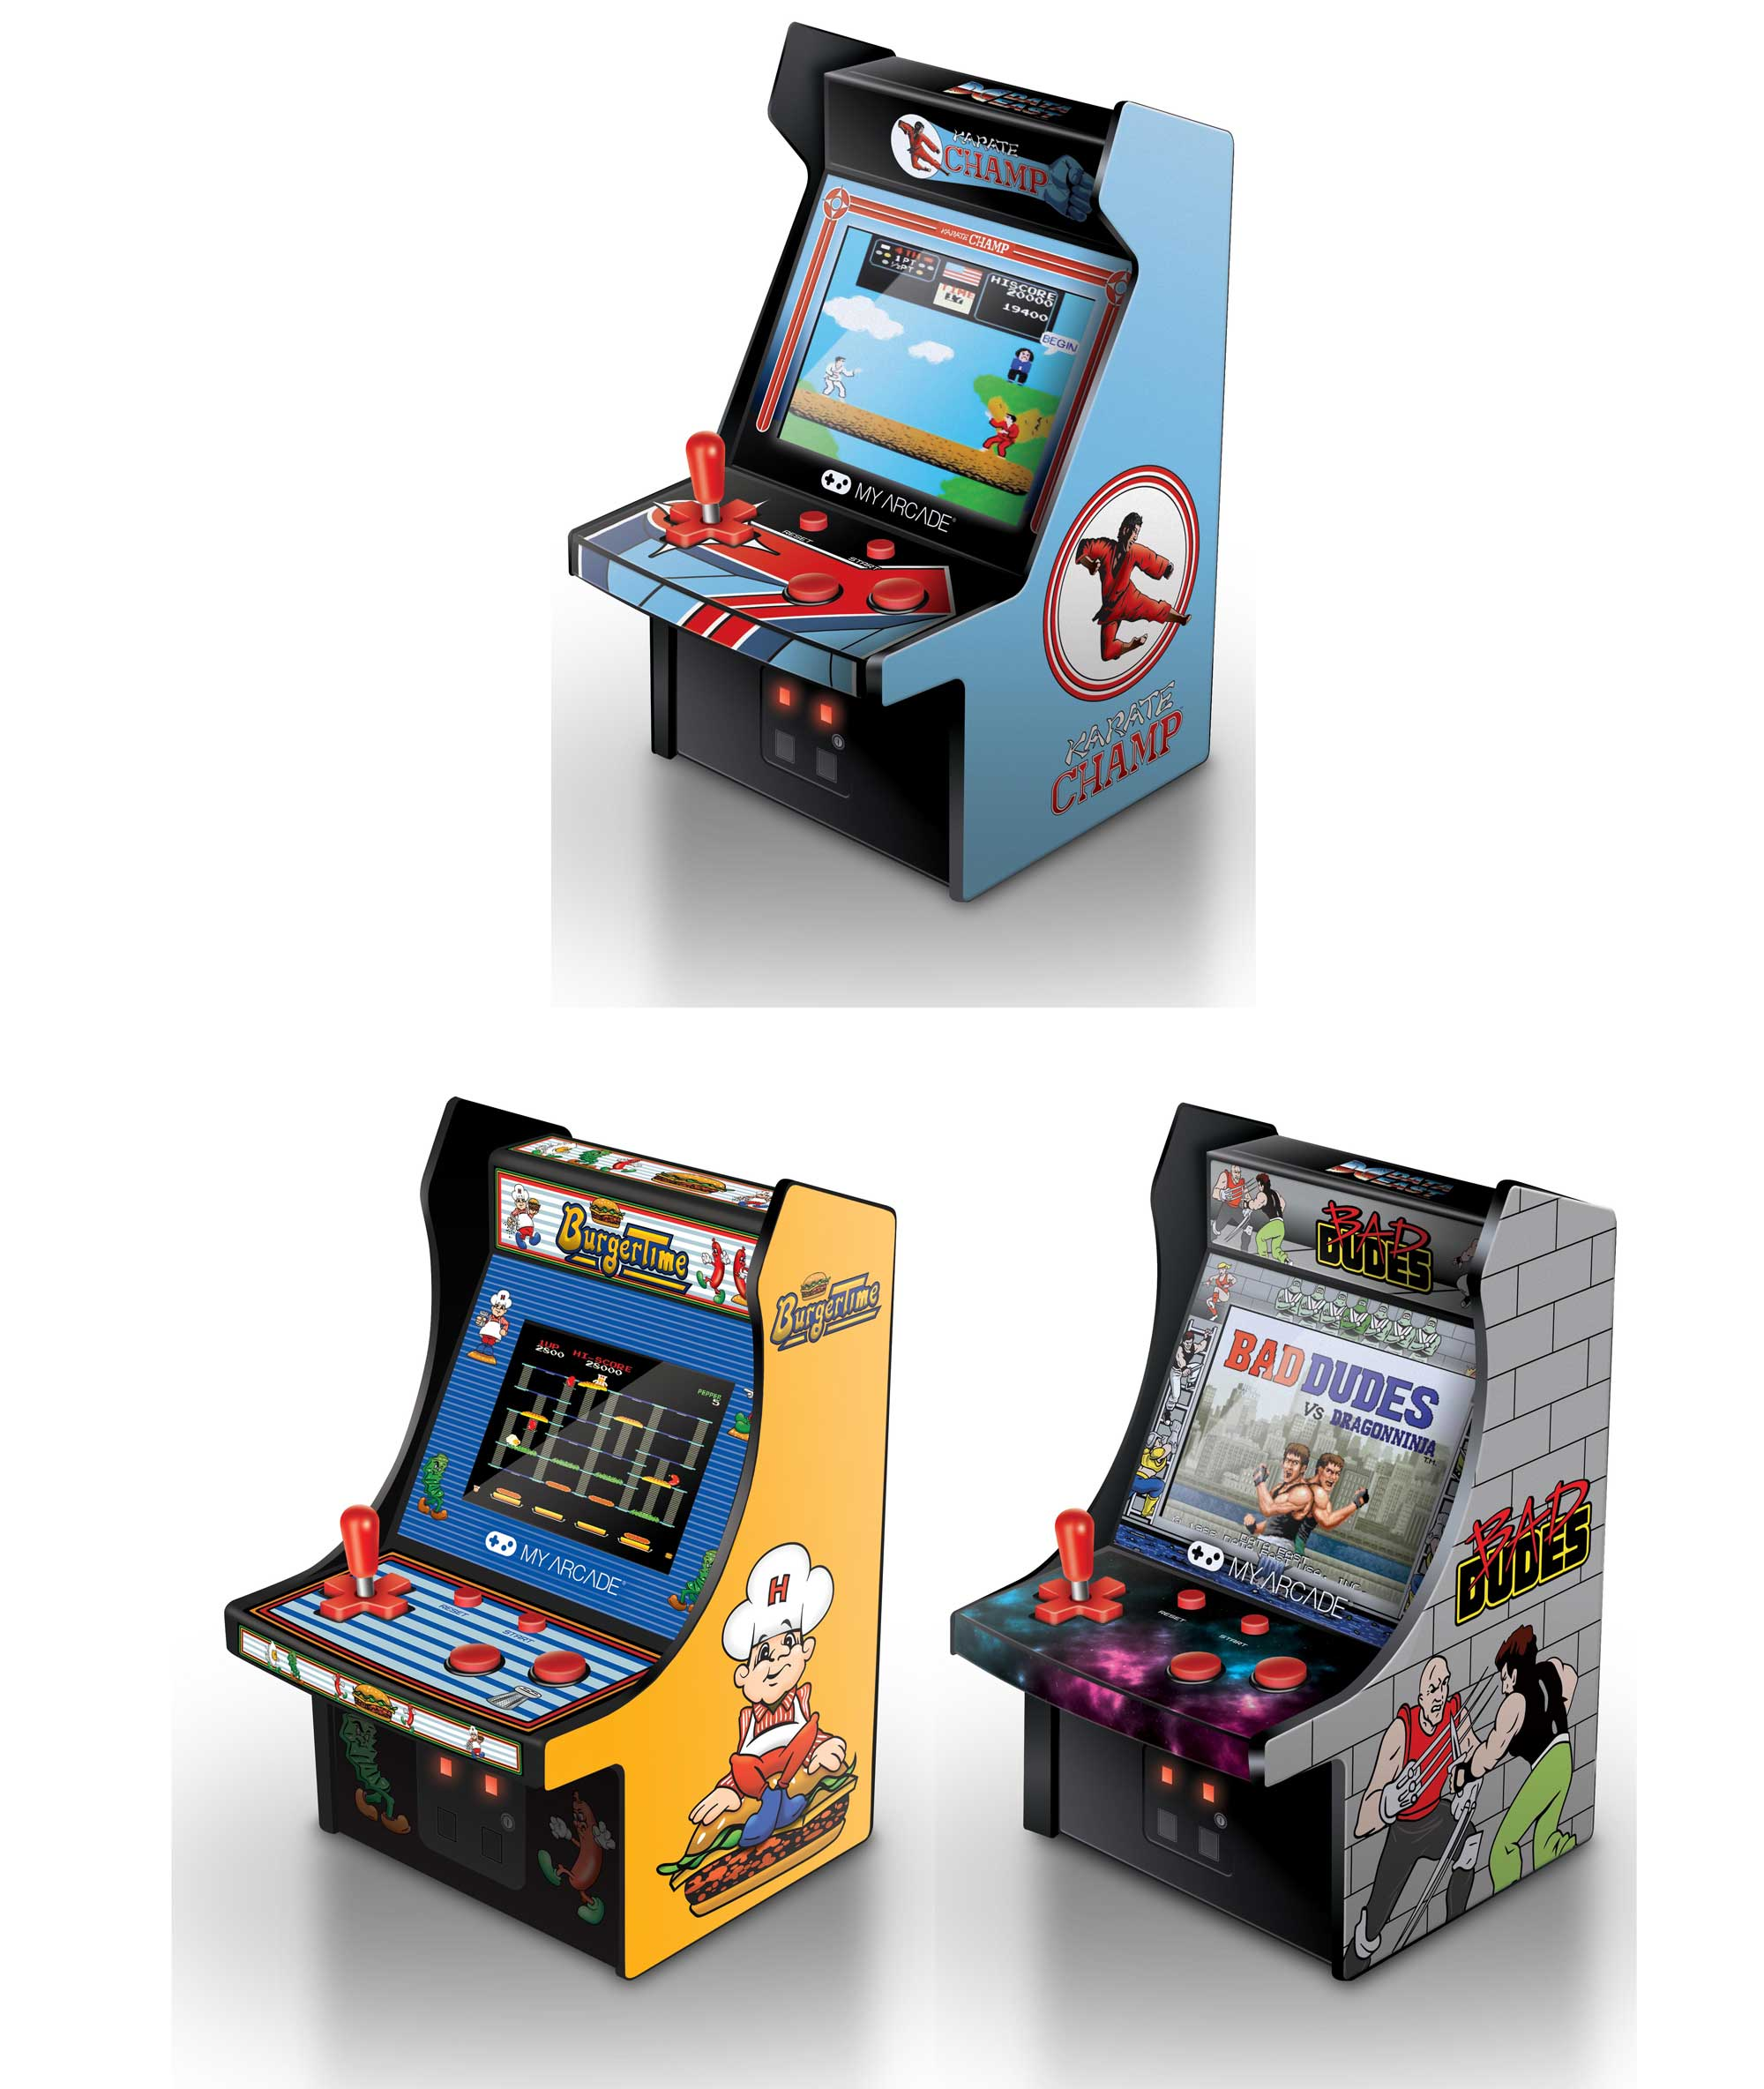 my arcade burgertime bad dudes karate champ retro micro arcade machine game ebay. Black Bedroom Furniture Sets. Home Design Ideas